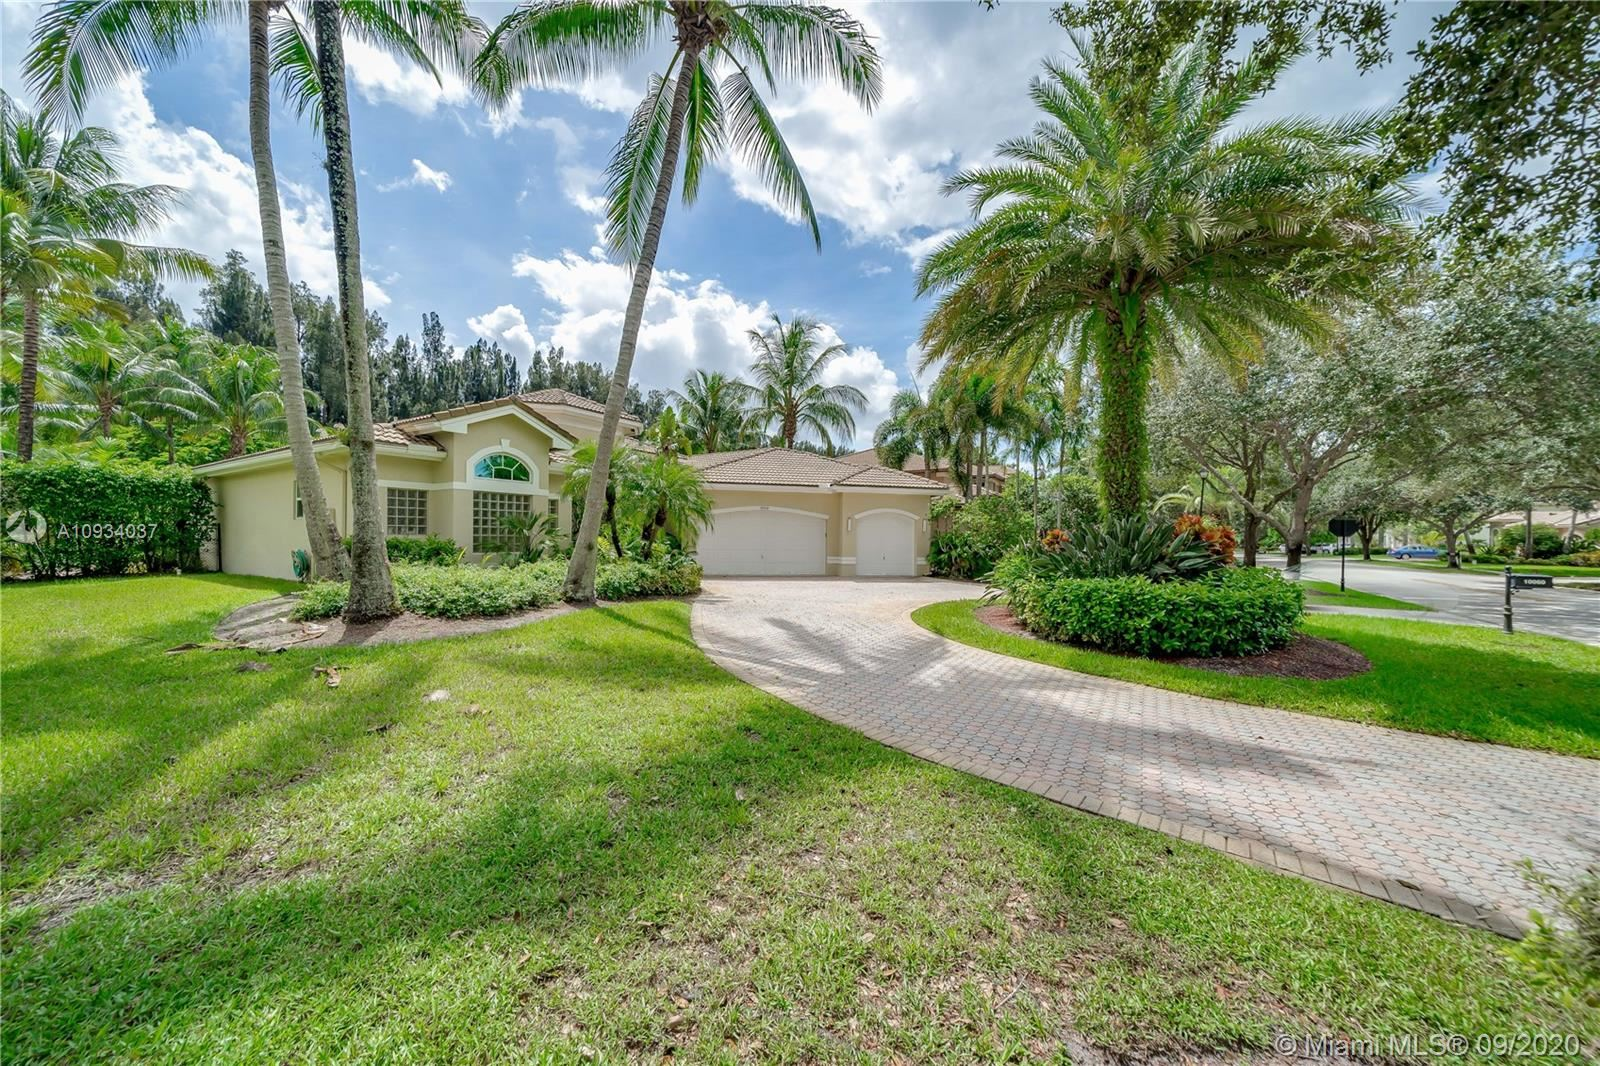 10060 S Lake Vista Cir, Davie, FL 33328 - #: A10934037